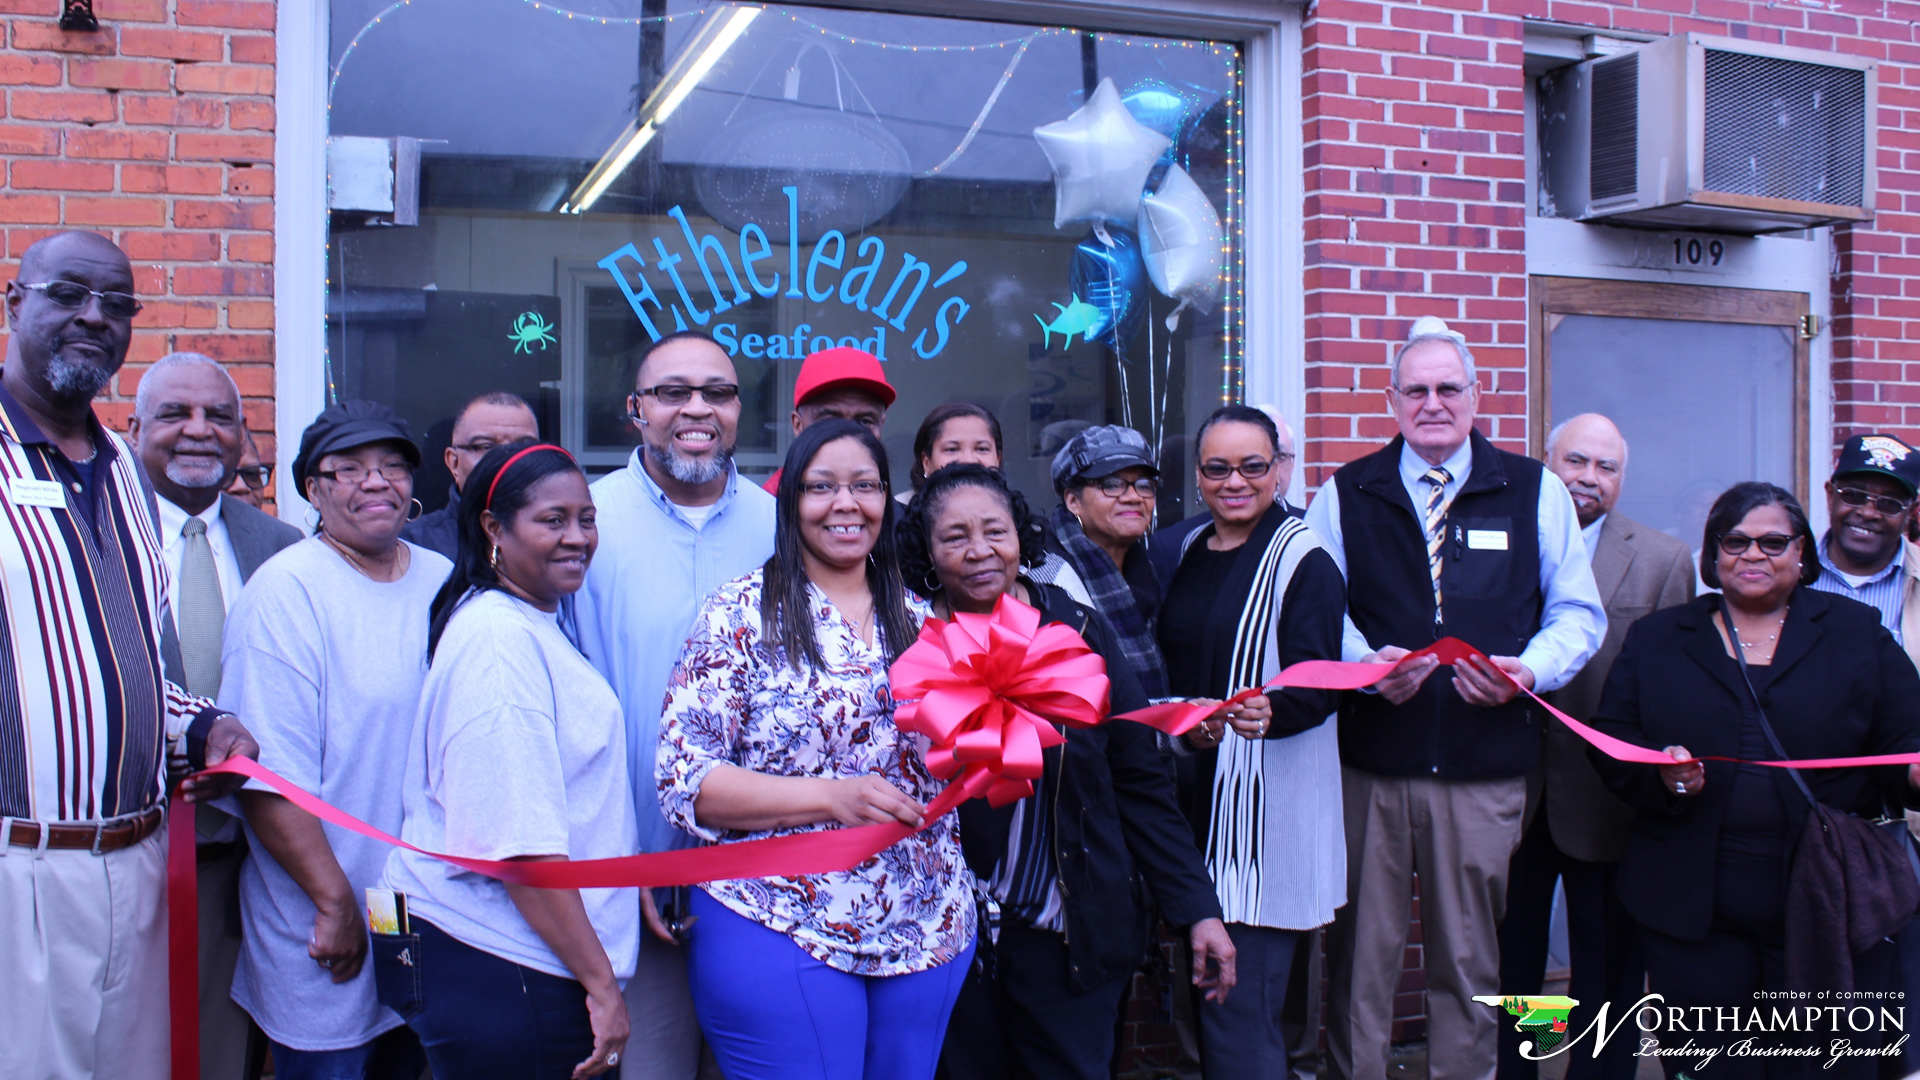 Ethelean's Seafood Rich Square Ribbon Cutting took place on January 13, 2020